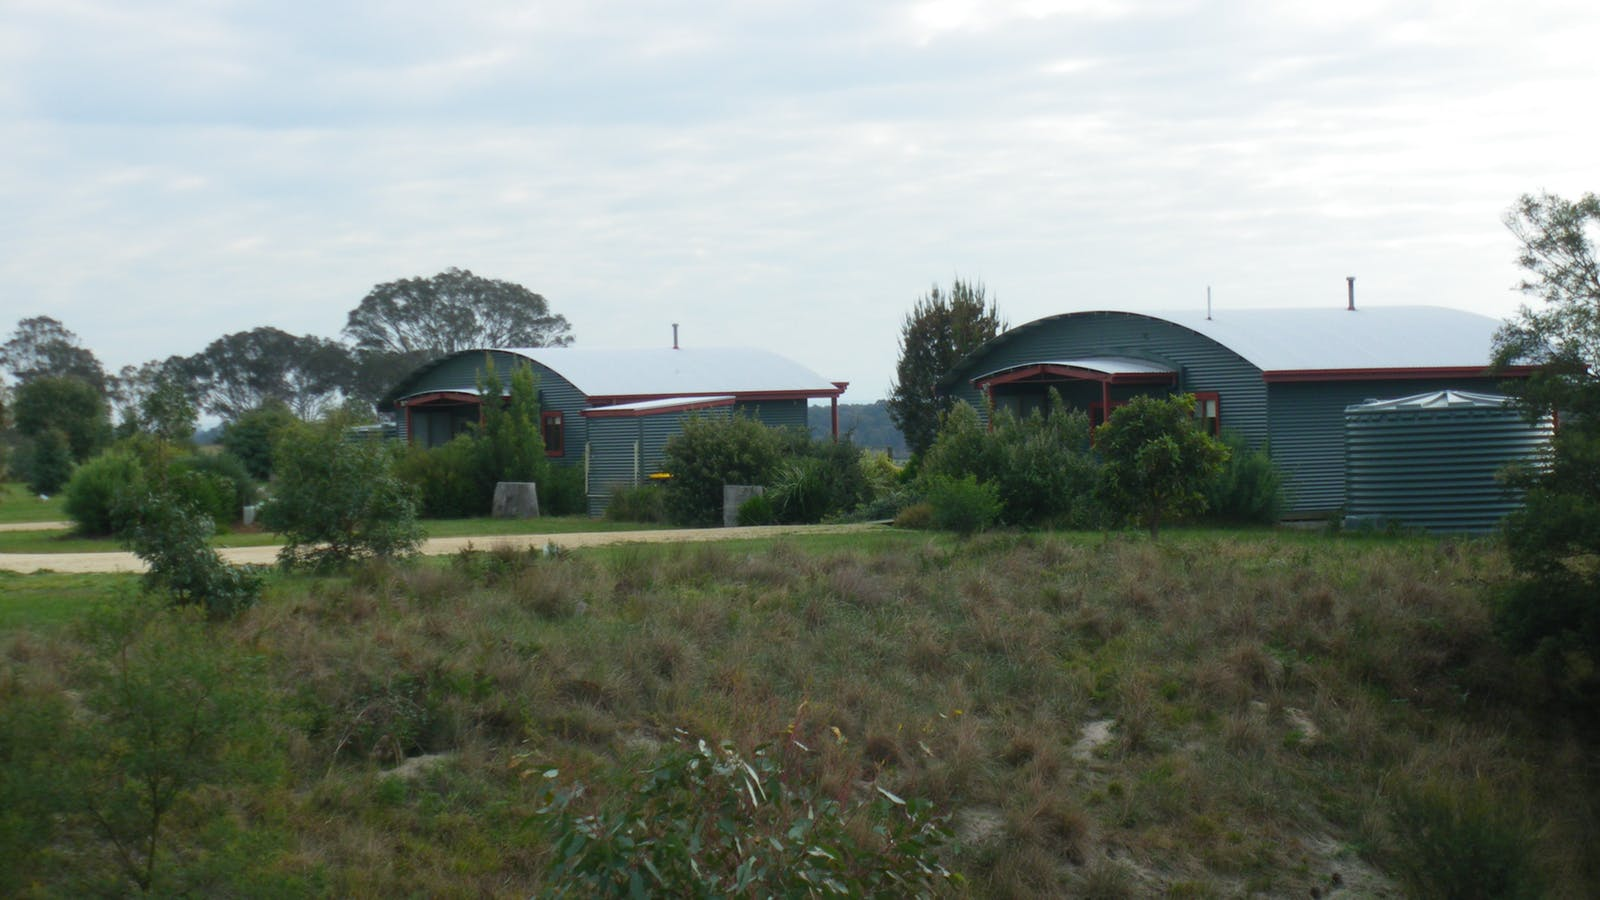 view of two cottages